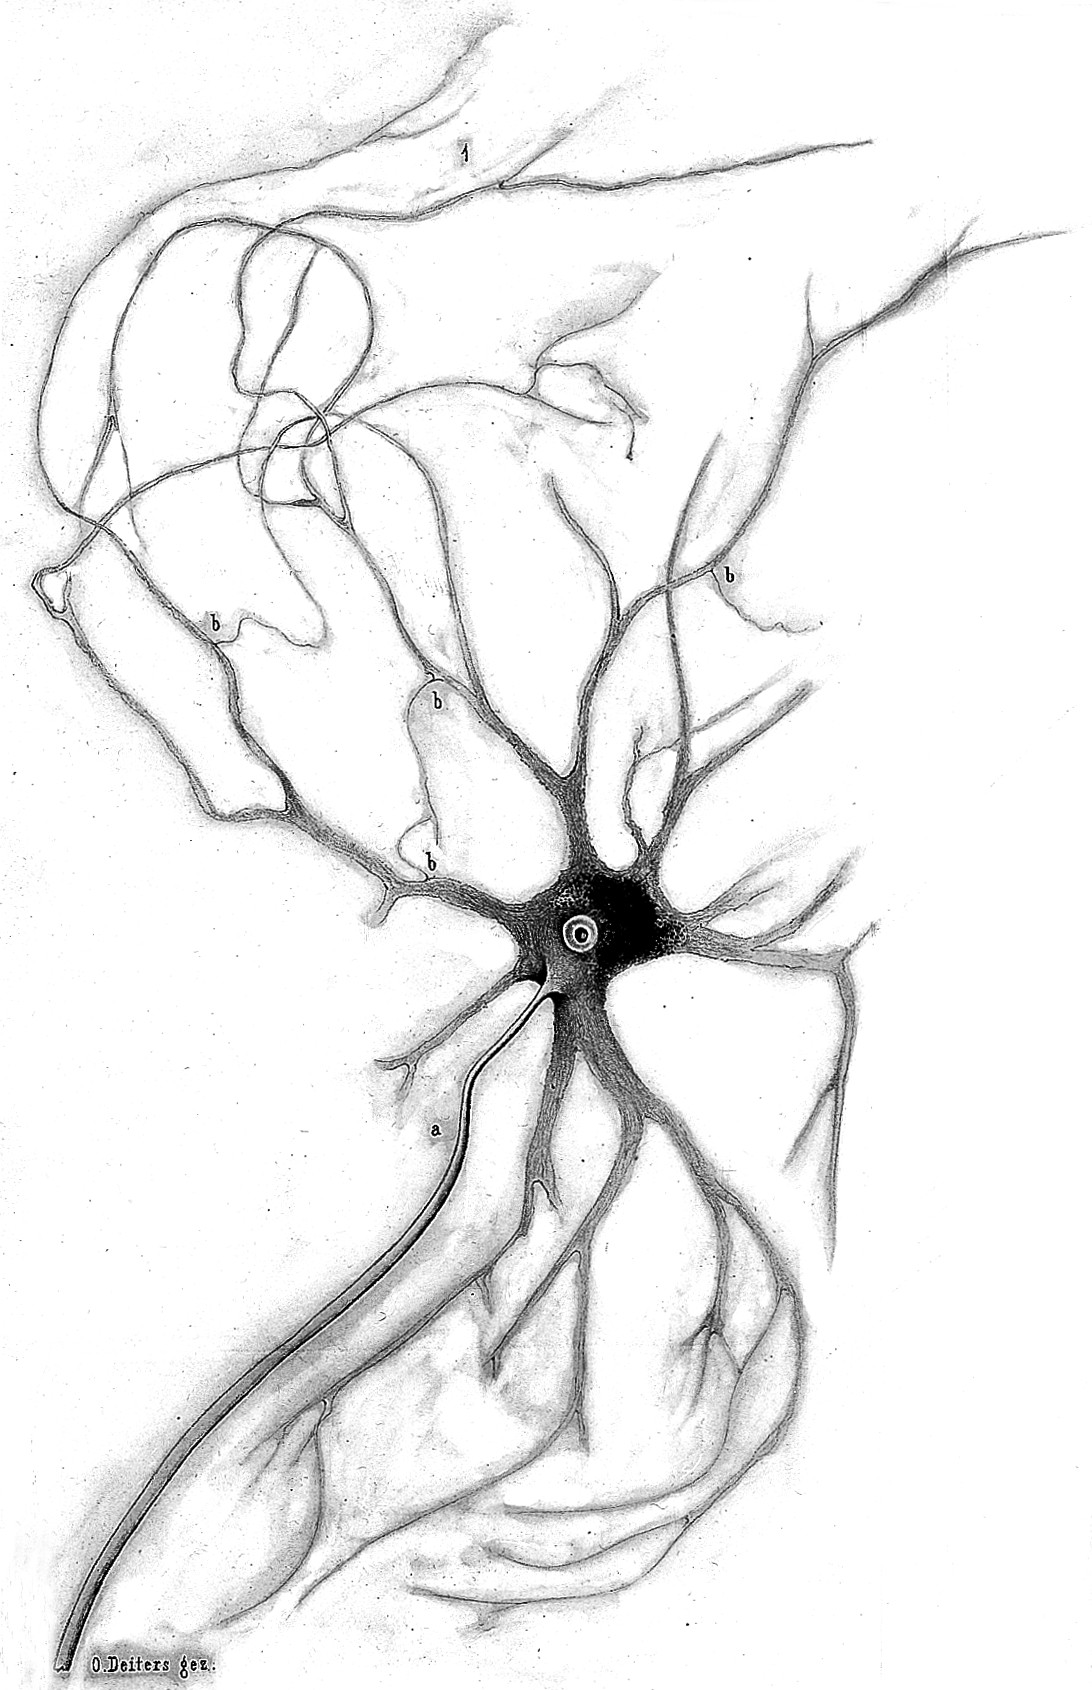 1092x1690 Filenerve Cell From Anterior Horn Of Spinal Cord Grey Matter